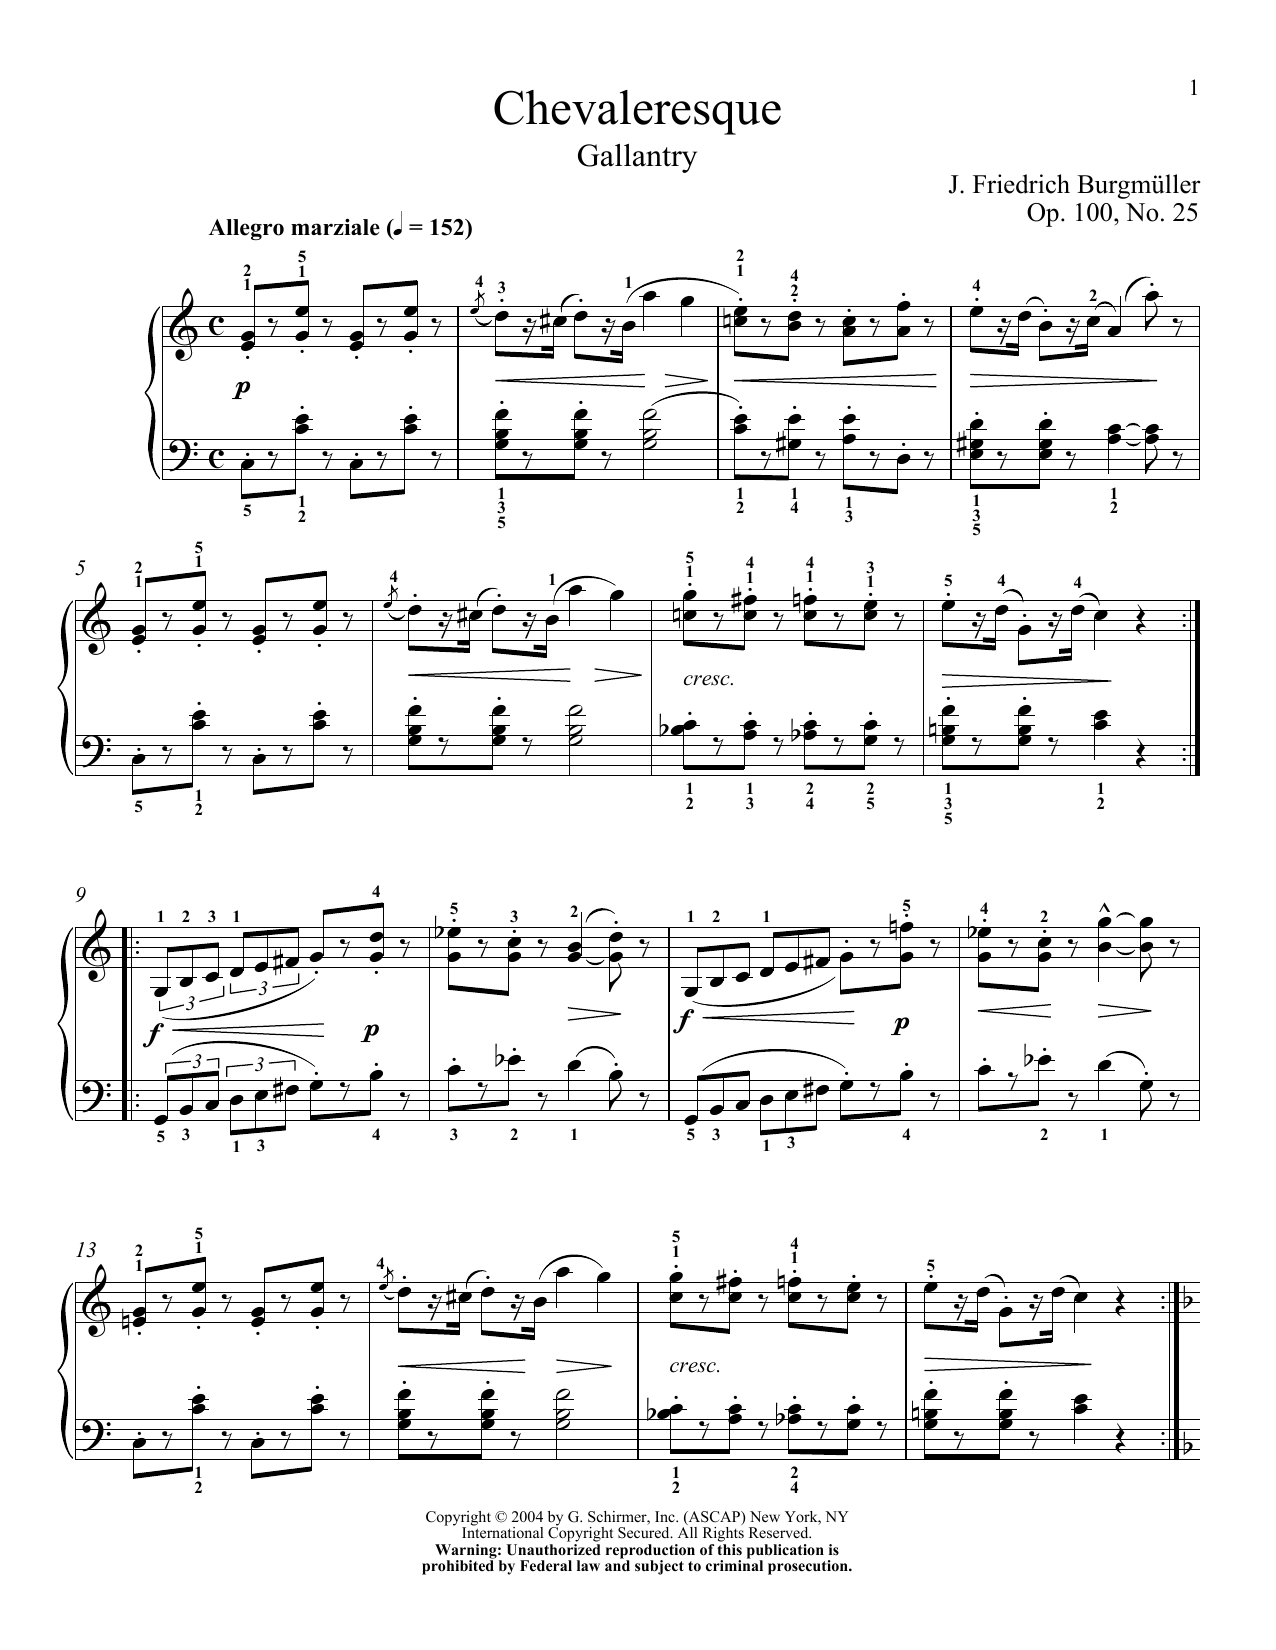 Spirit Of Chivalry (La Chevaleresque), Op. 100, No. 2 (Piano Solo)